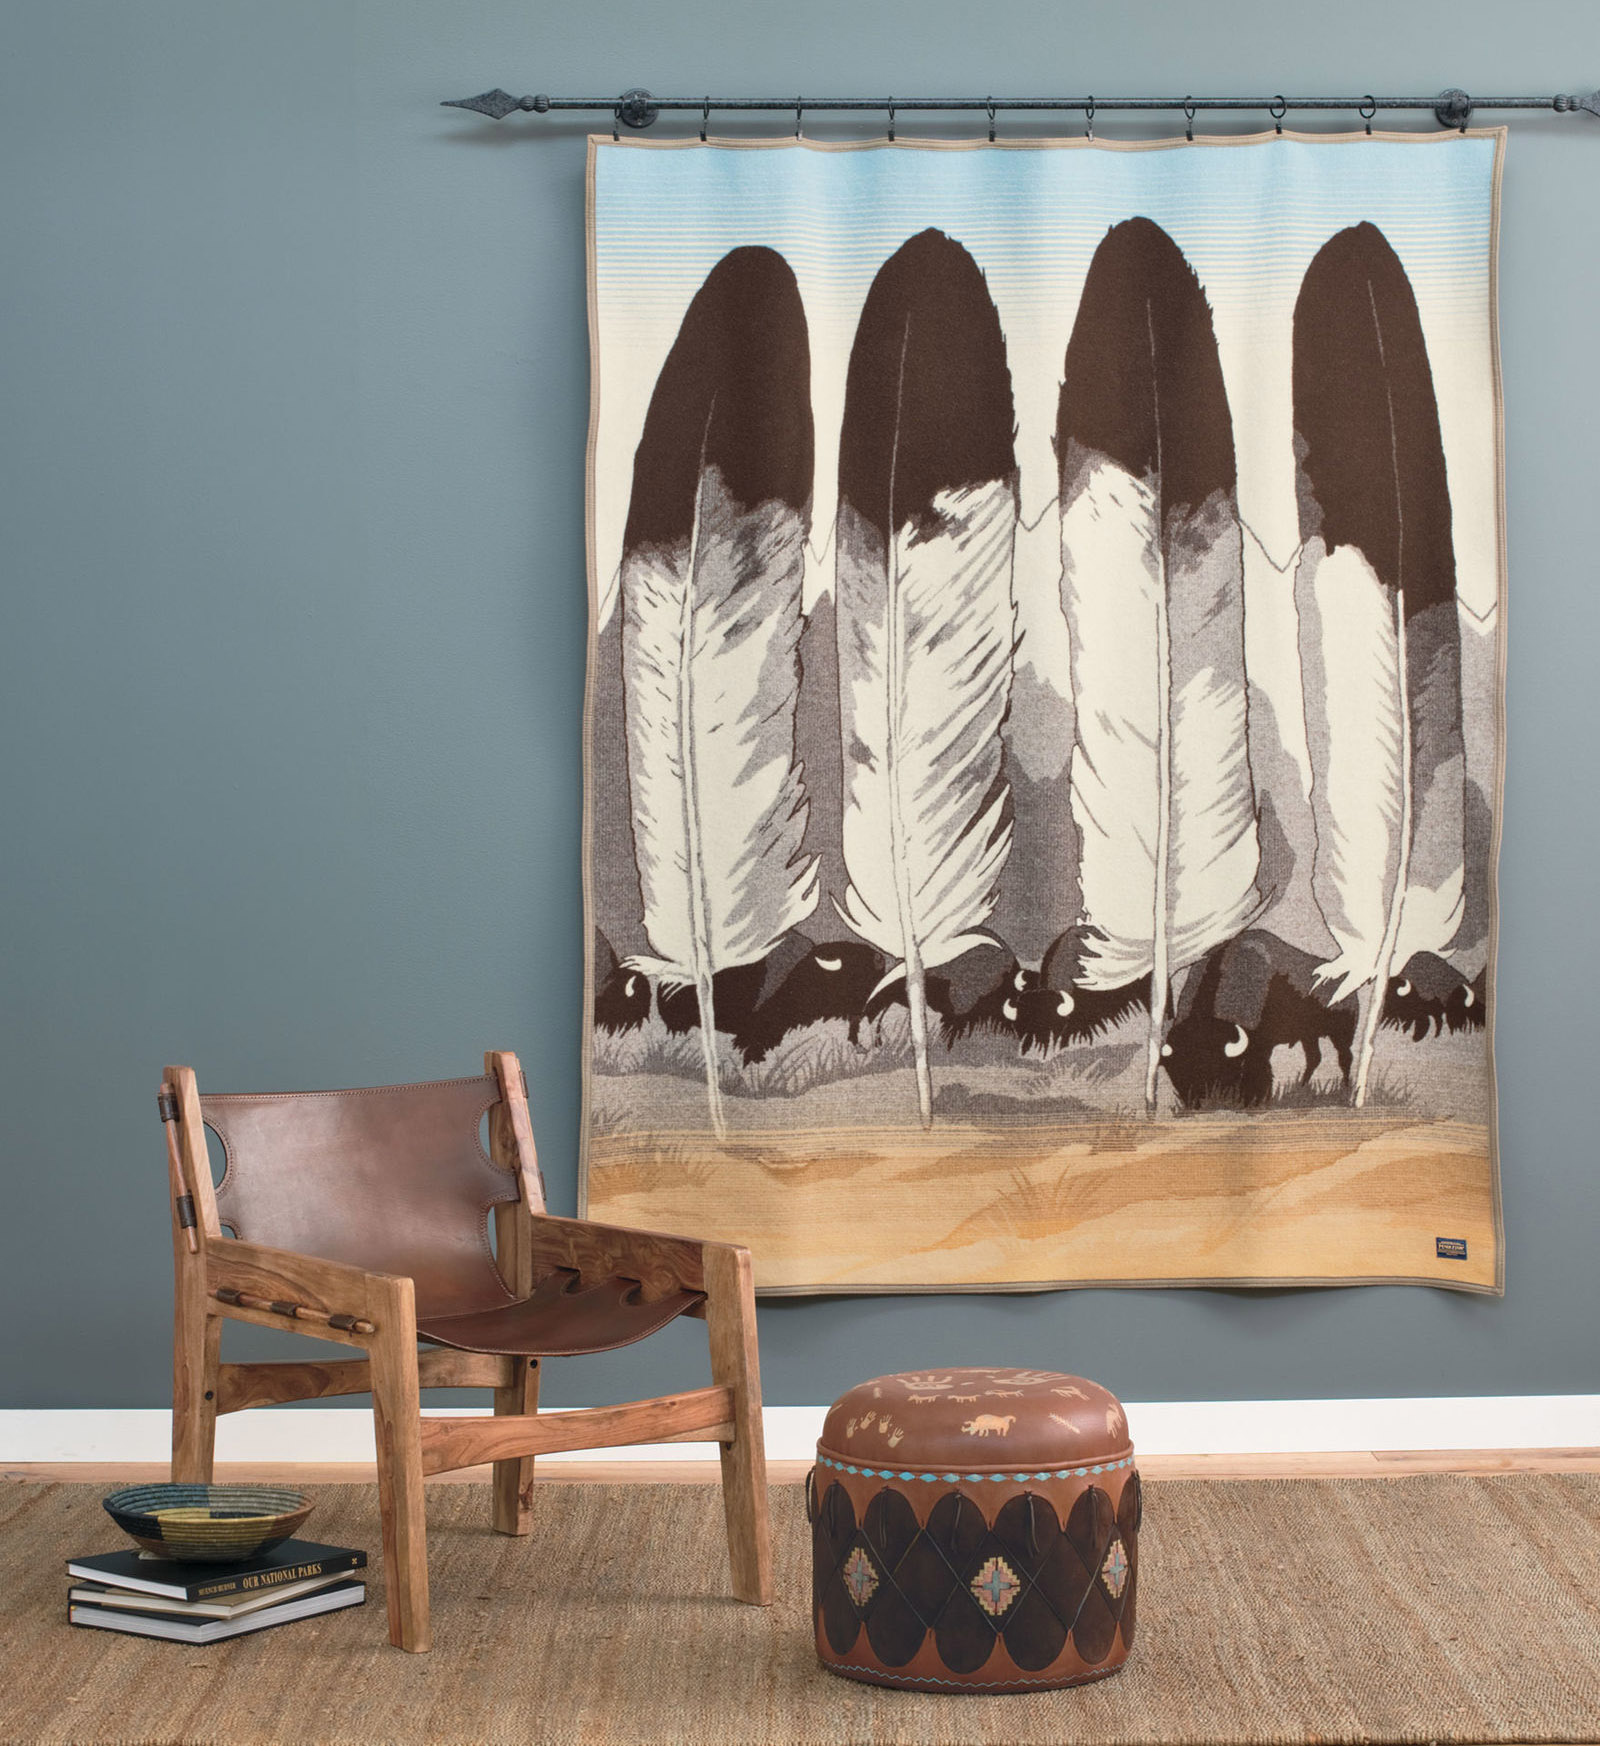 """On the wall hangs the Pendleton Legendary Series blanket, """"In Their Element"""" designed by artist Joe Toledo. The blanket design contains four eagle feather, a mountain range, and a herd of grazing buffalo."""